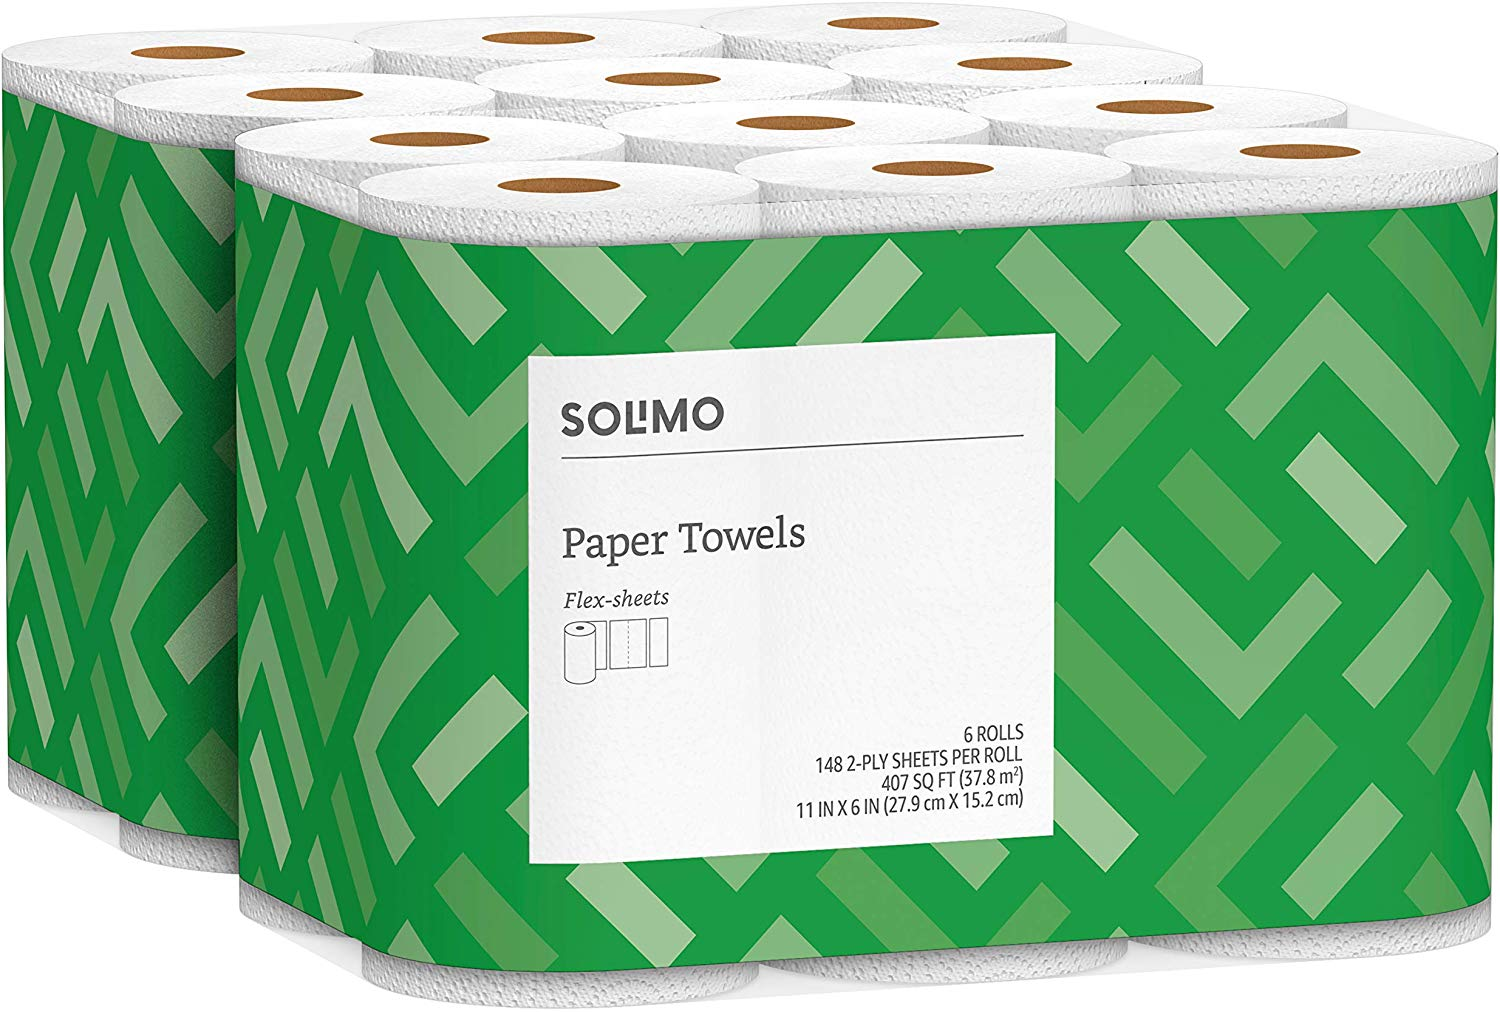 Solimo Basic Flex-Sheets Paper Towels, 12 Value Rolls only $13.99 with coupon! (was $19.99)